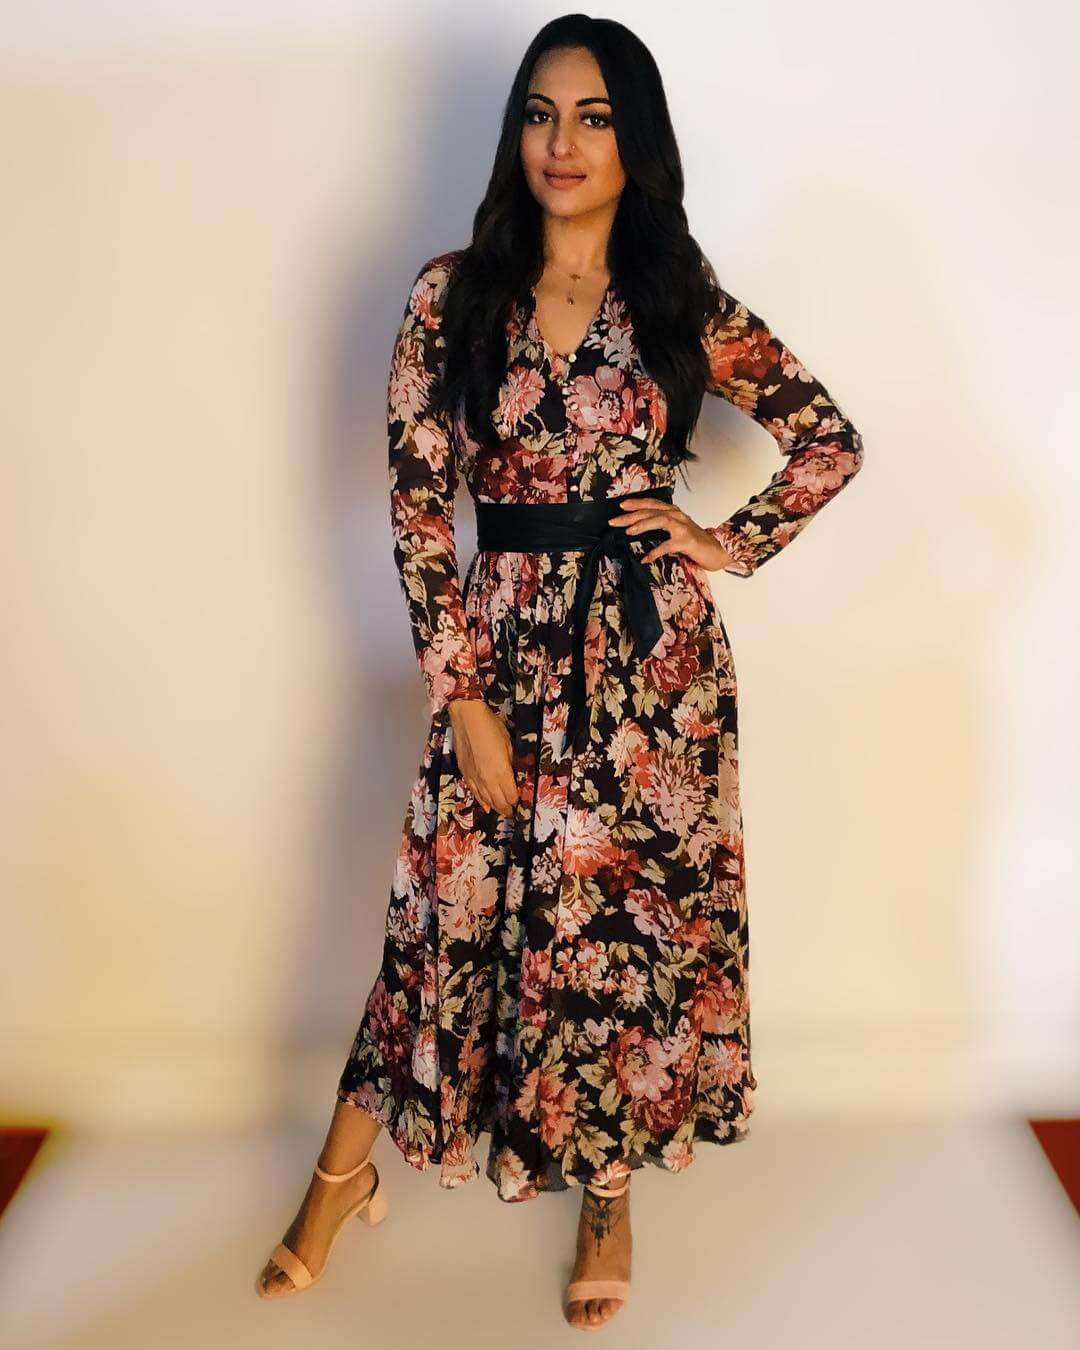 Sonakshi Sinha Floral belted dress Belted Outfit Ideas